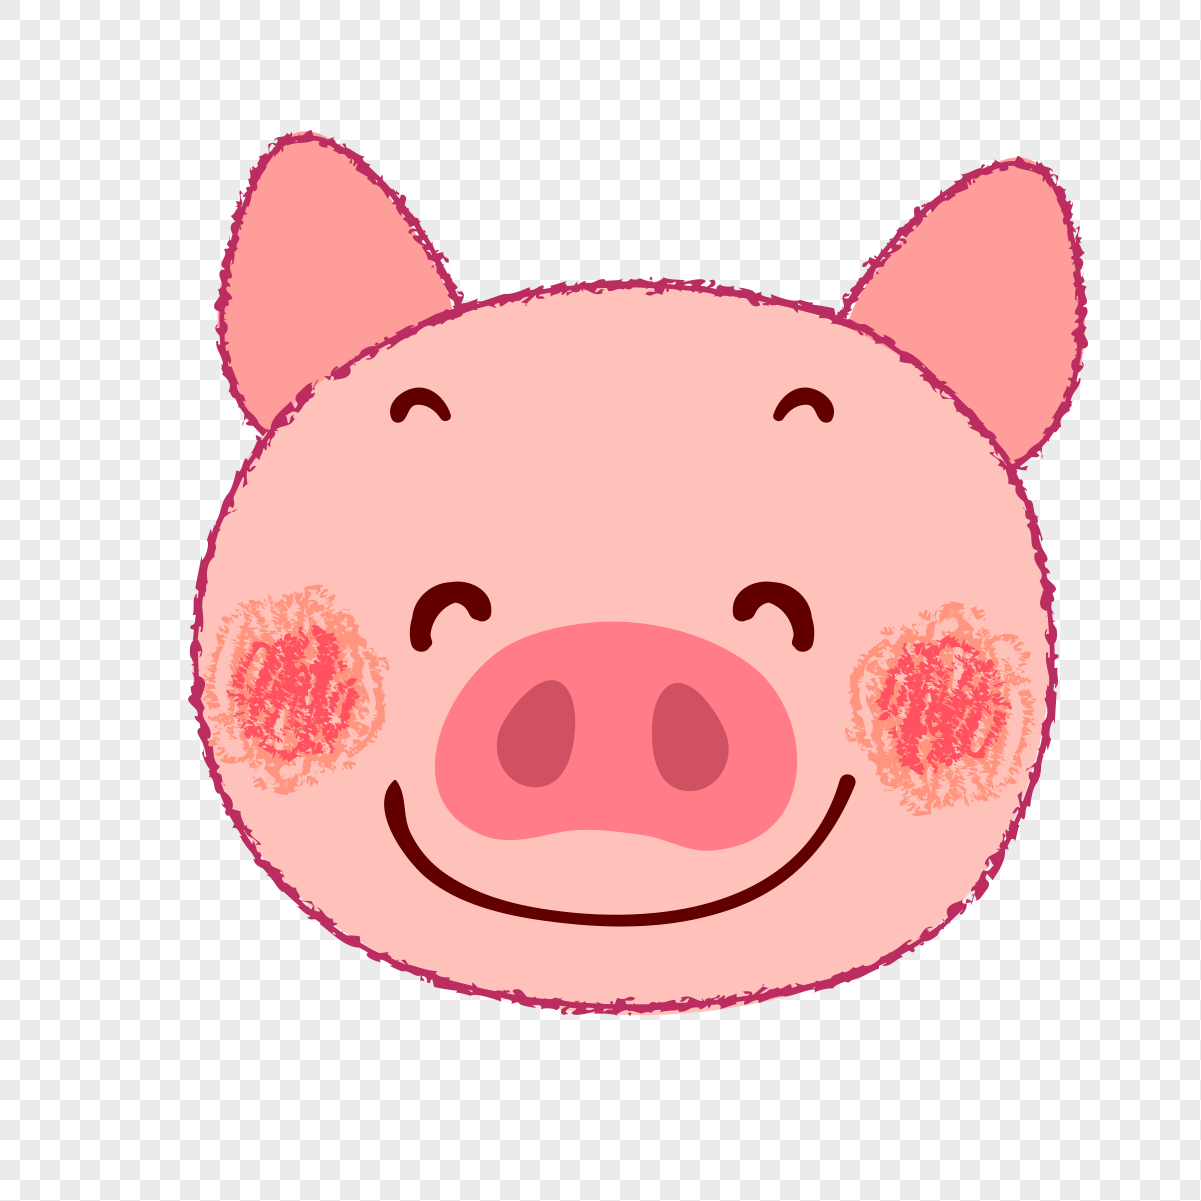 cute pink pig png image picture free download 400436051